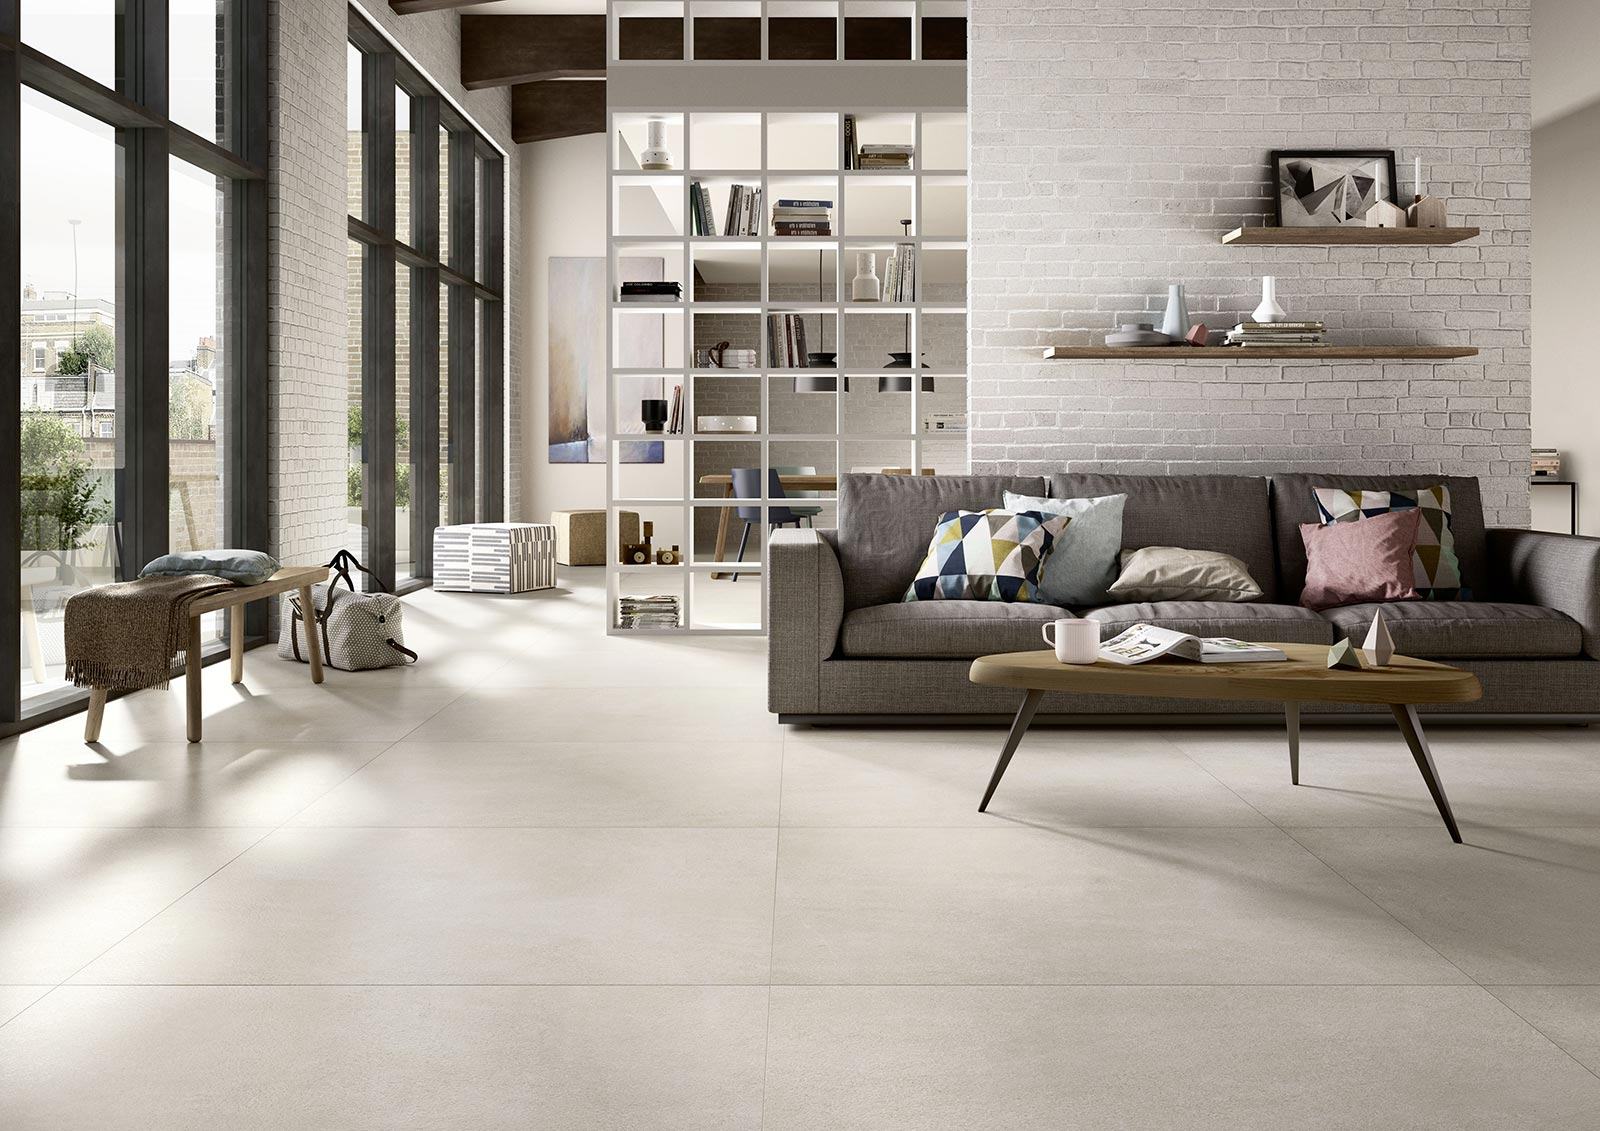 living room tile. Living room tiles  your home decor inspiration Marazzi 6347 Room Floor for furniture